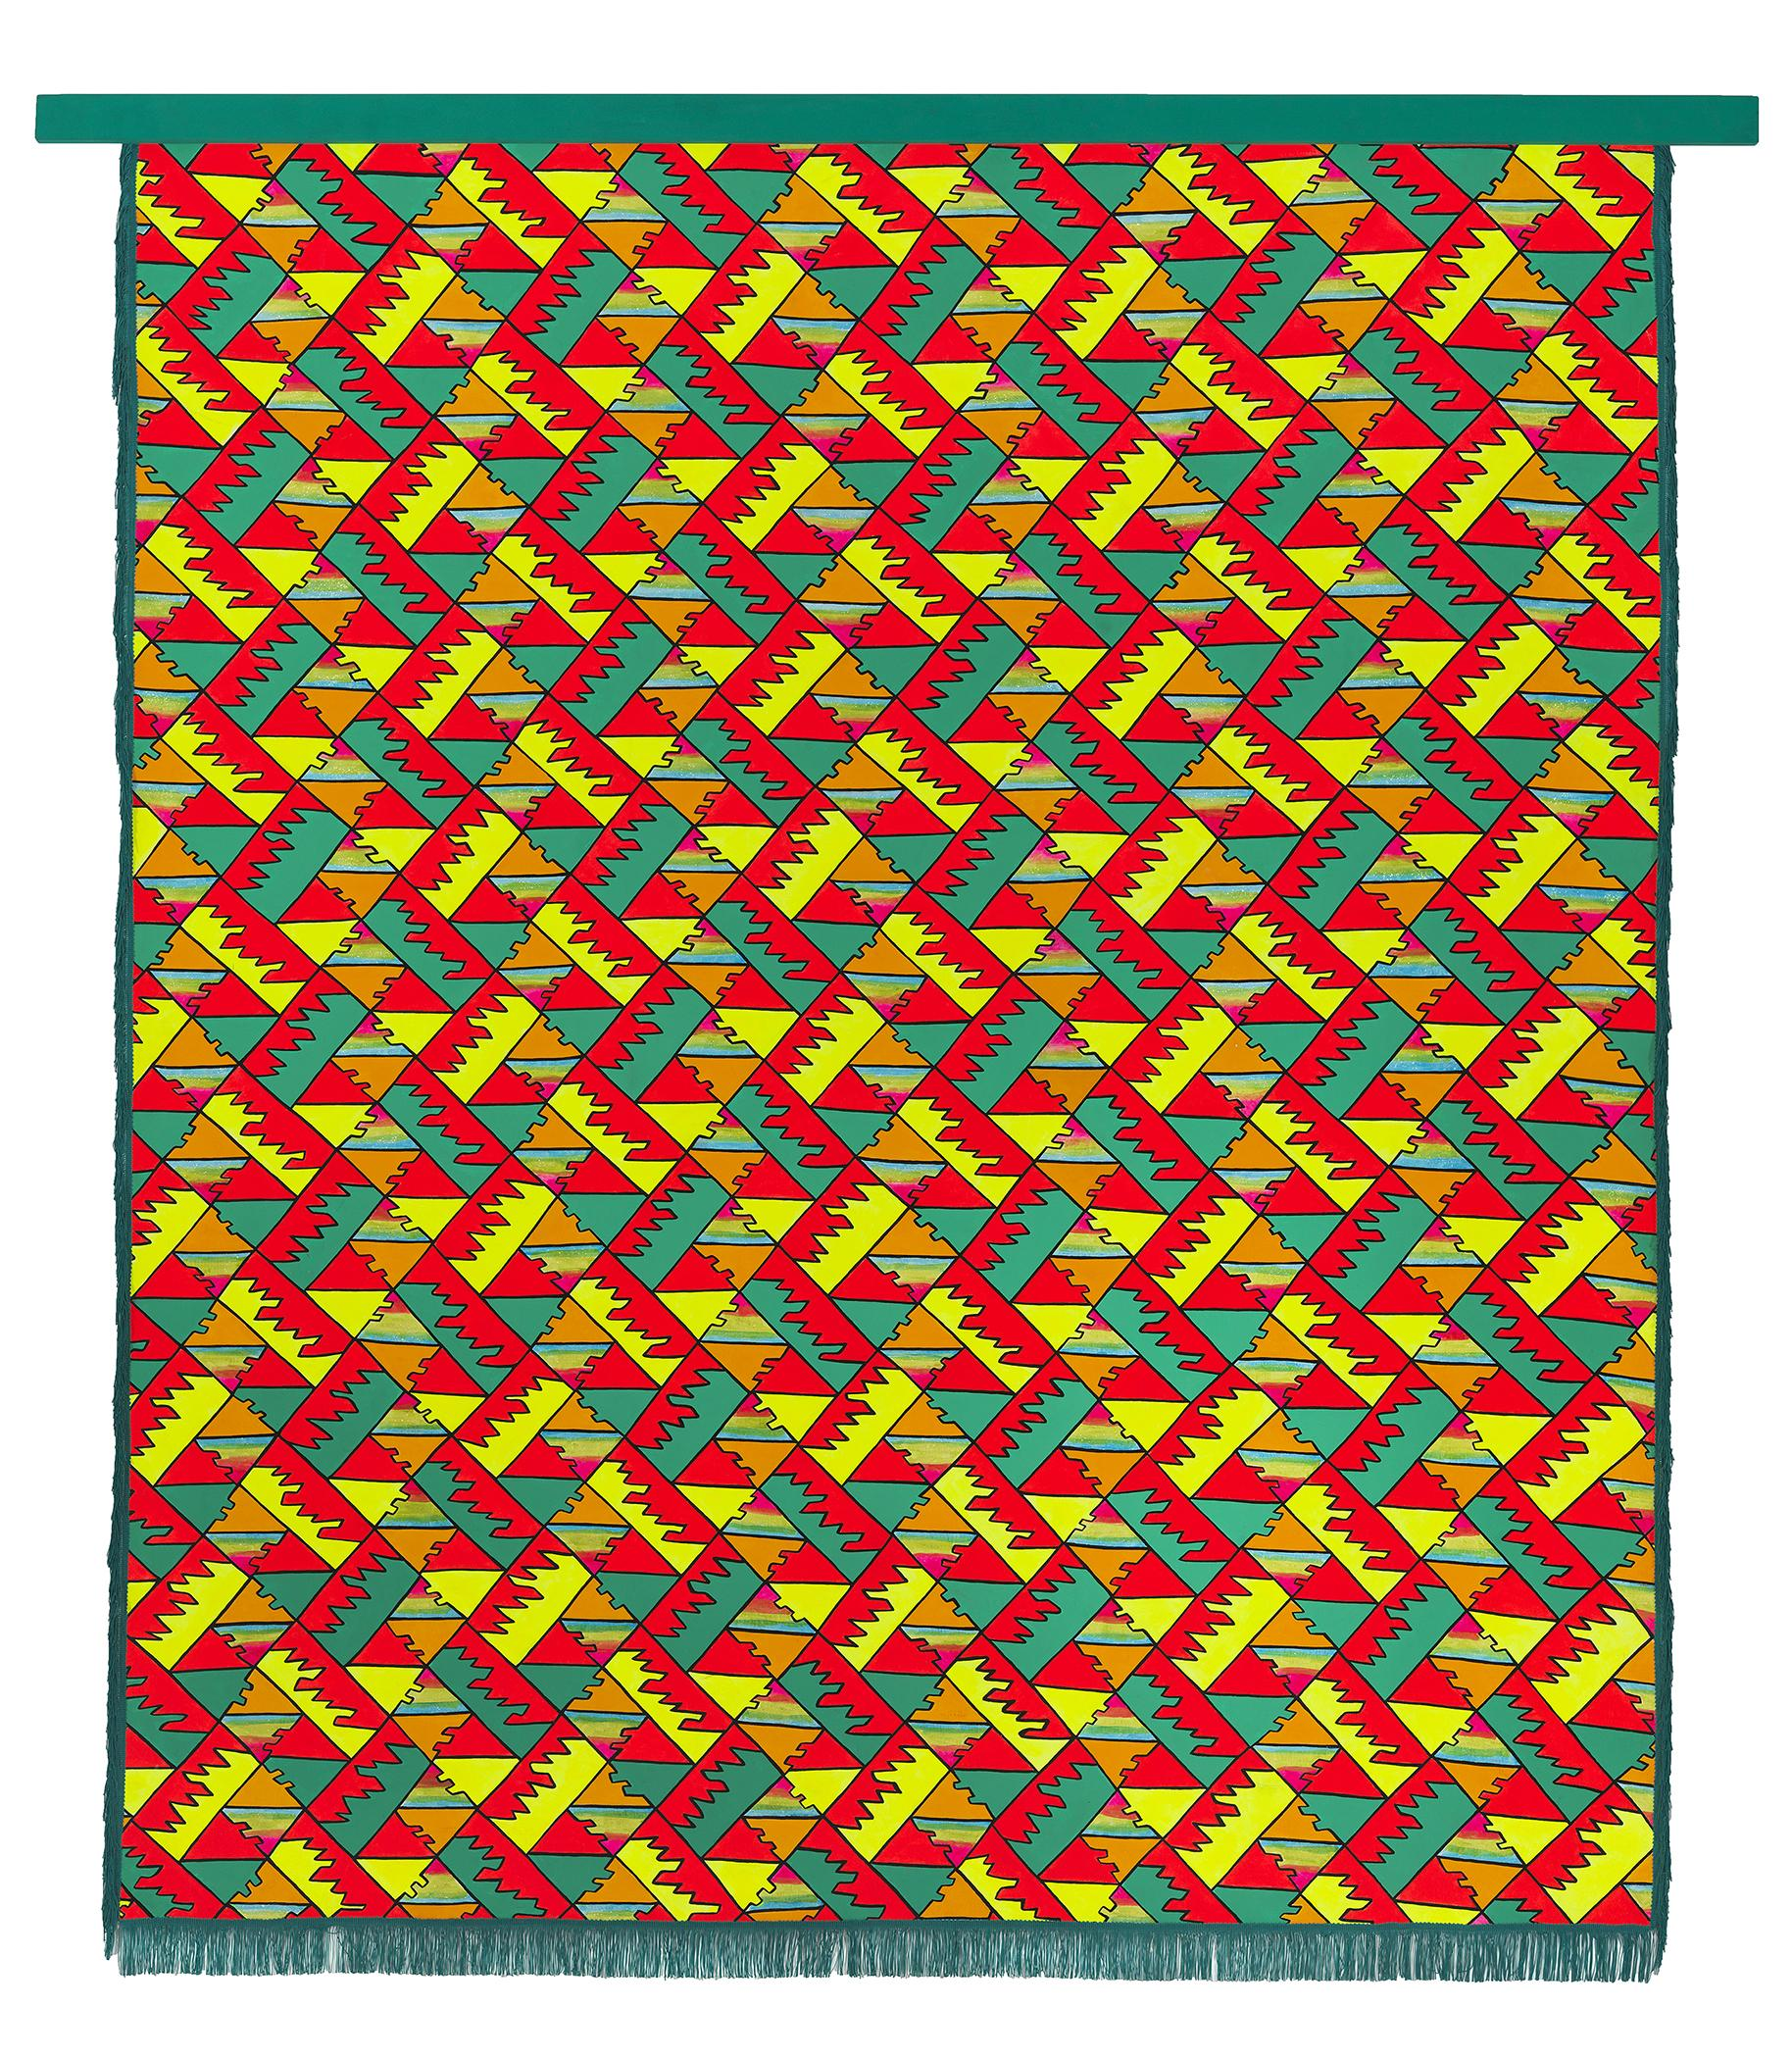 A painting of a geometric pattern features interlocking neon shapes in red, orange, blue, yellow, and teal.